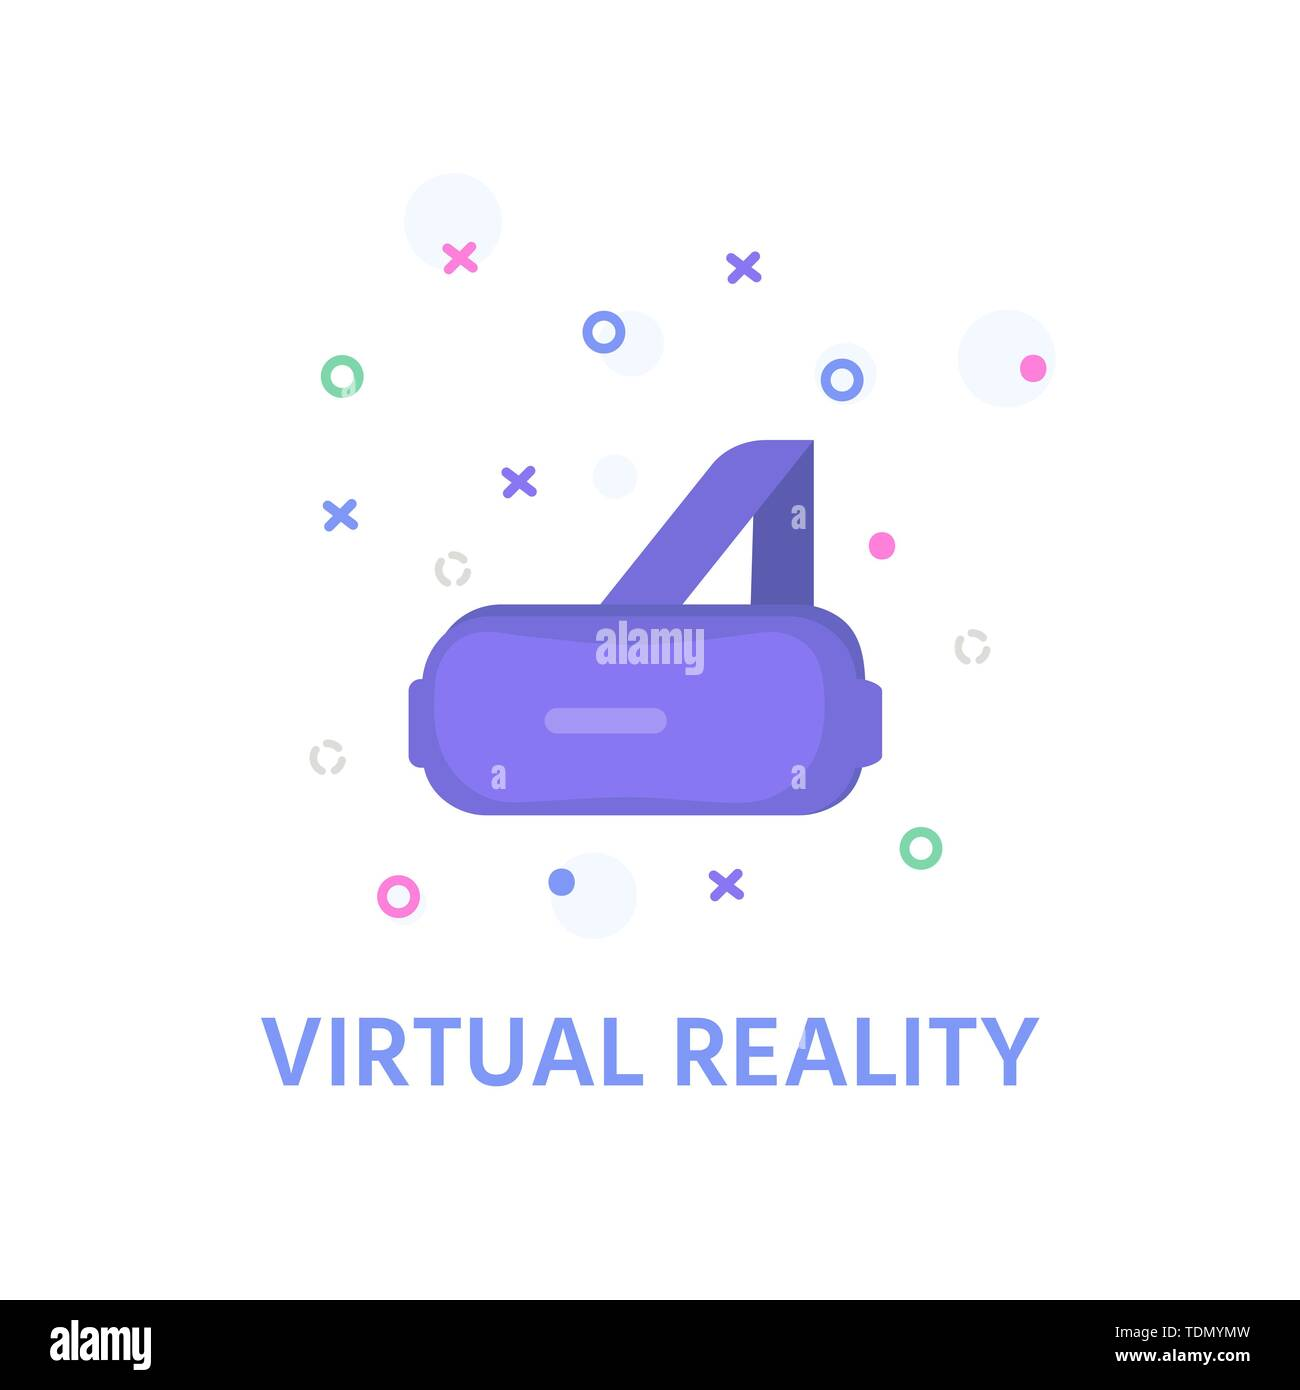 Virtual reality concept for design. Icon of goggle headset,  vr interface, learning and interacting with imaginary or virtual world. Vector VR glasses - Stock Image